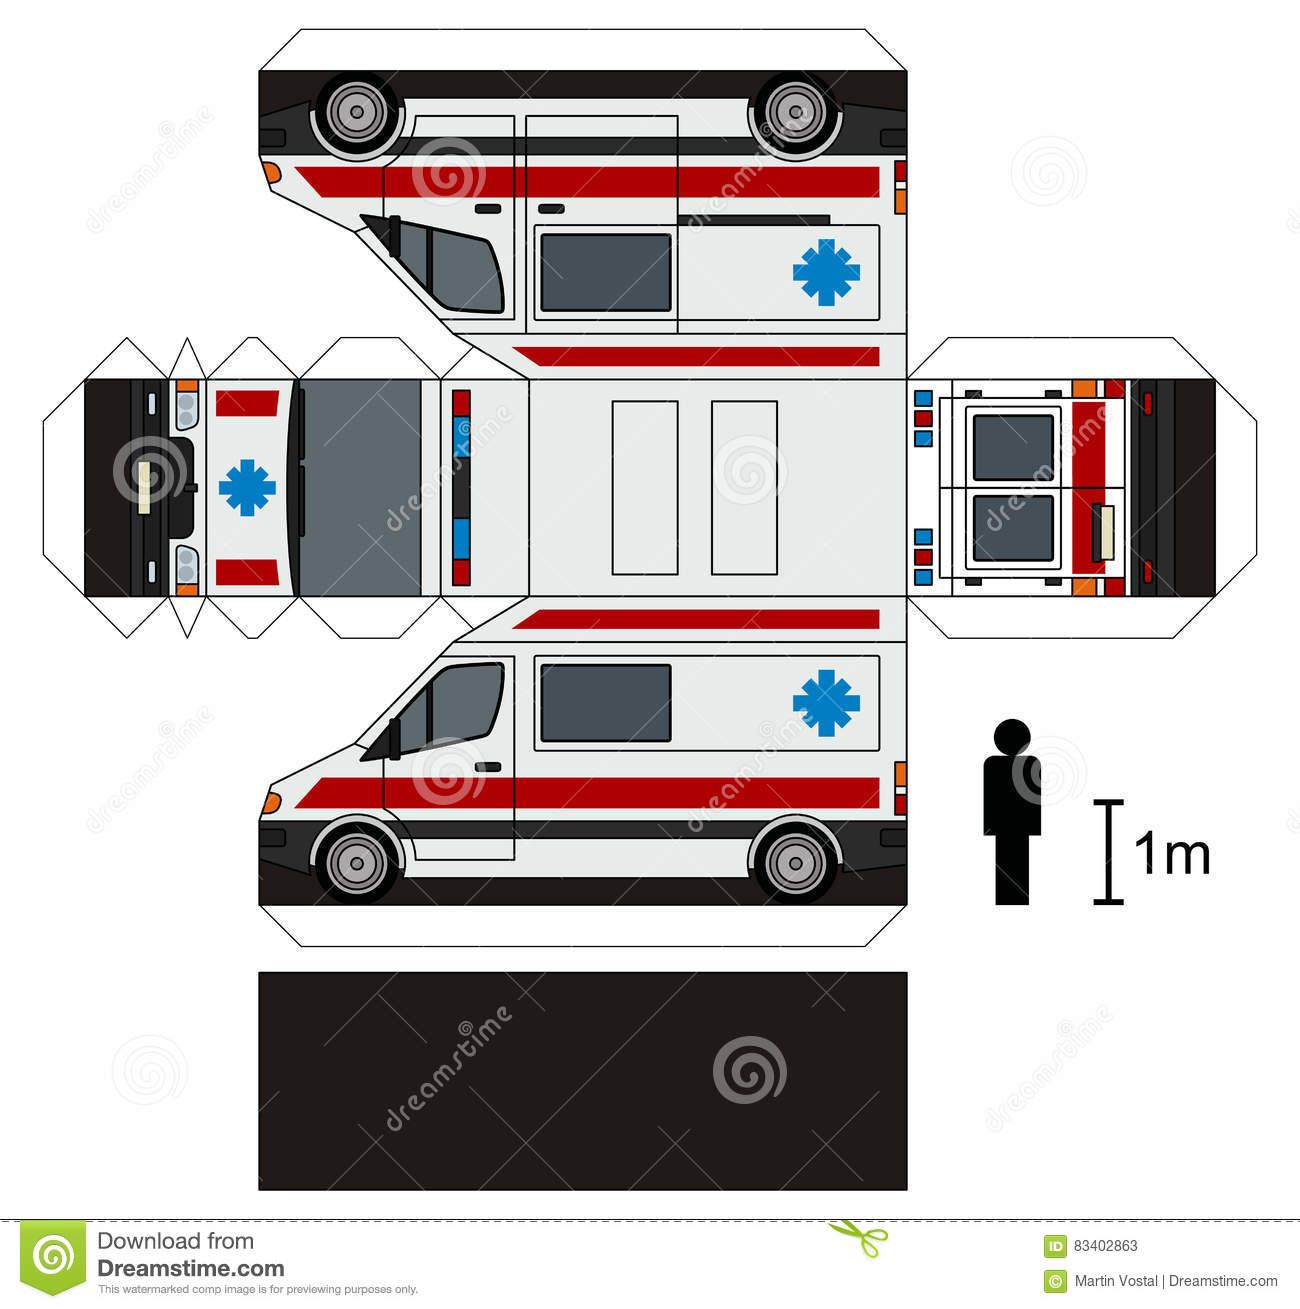 Paper Model Of An Ambulance